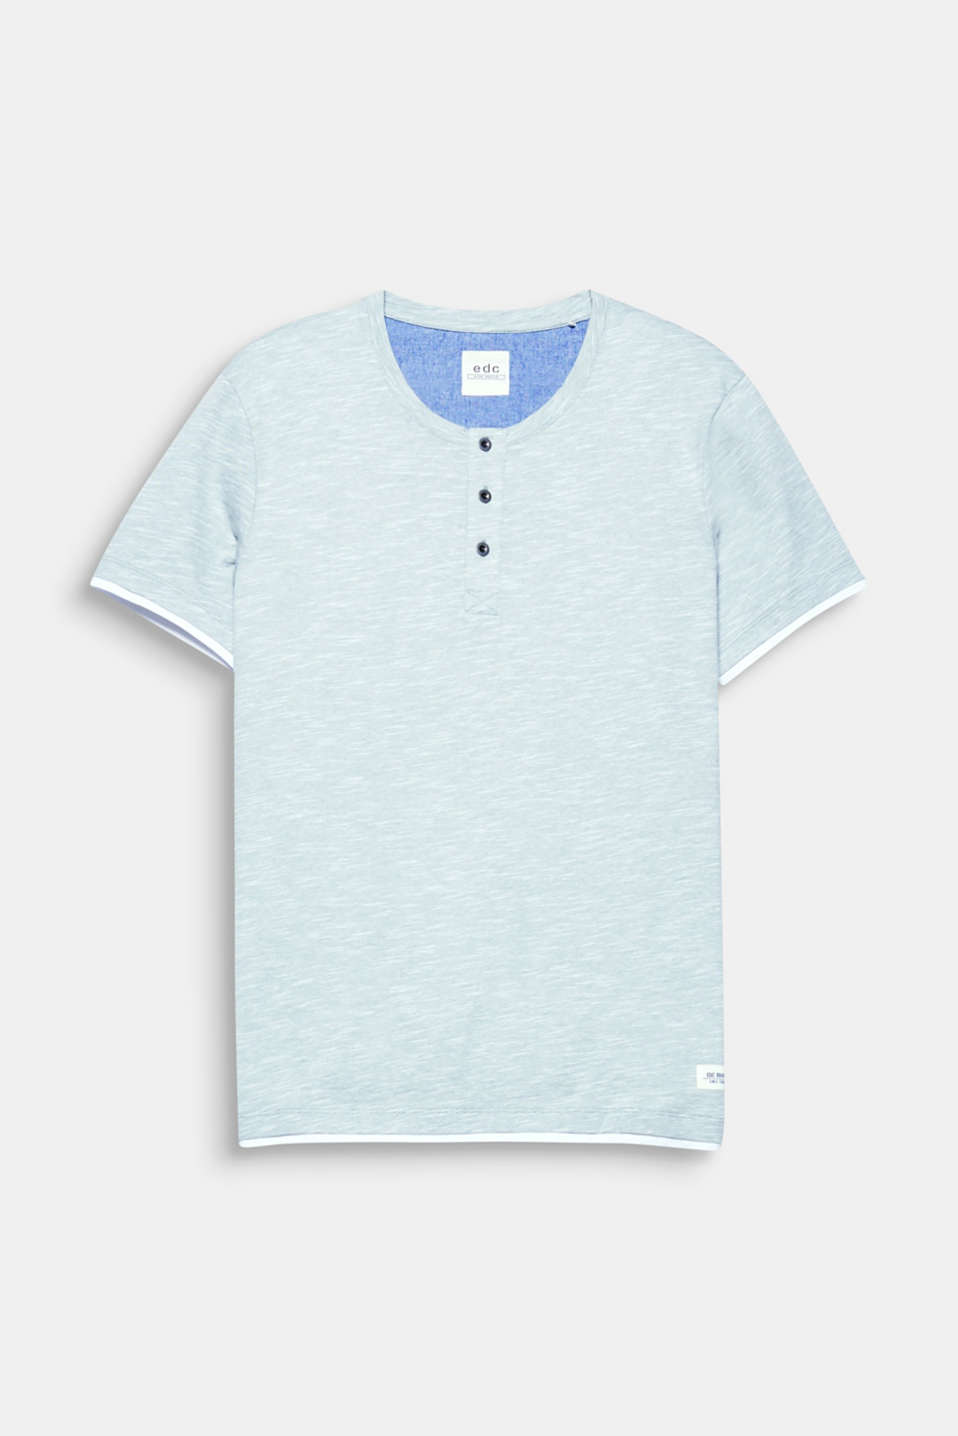 A fashion basic and must-have for every wardrobe: Slub jersey Henley top, 100% cotton.